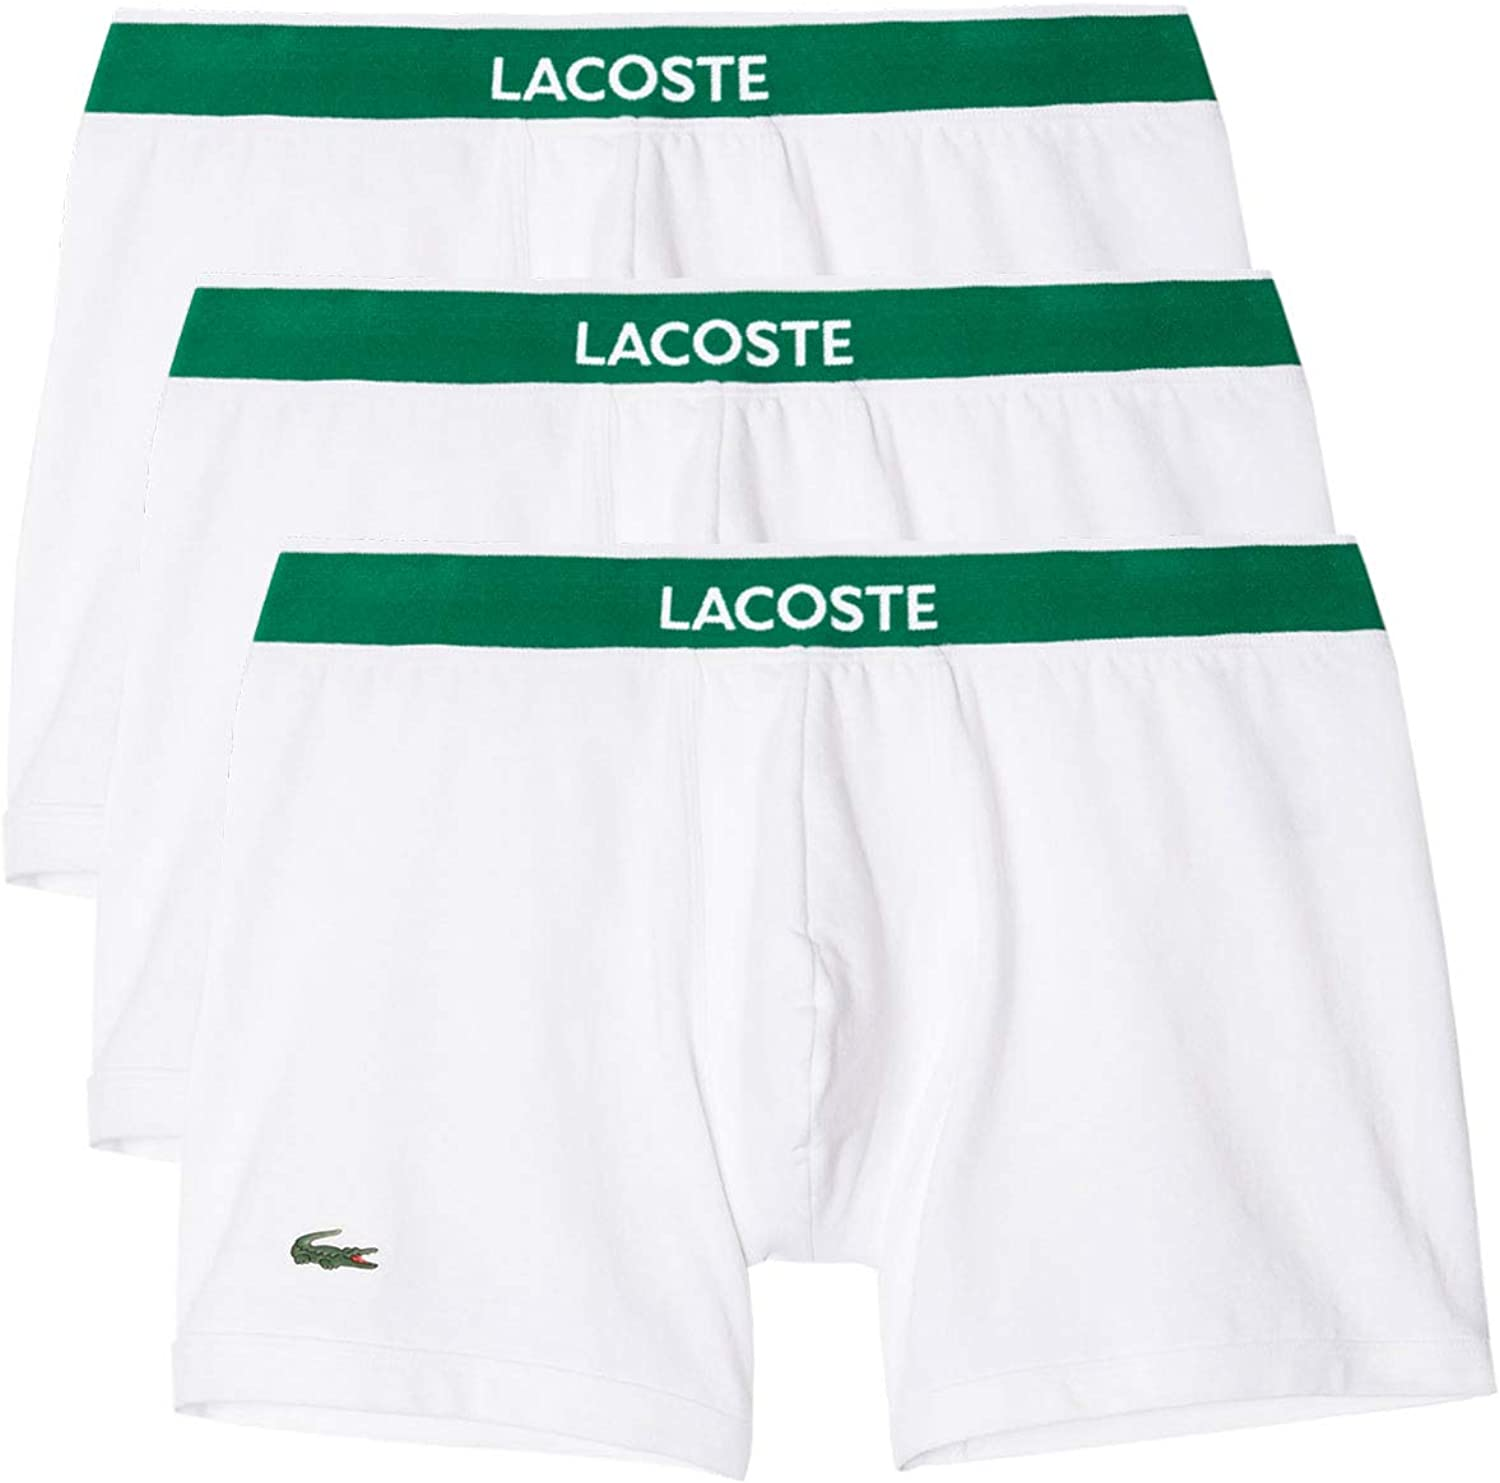 Lacoste In Cotone Stretch 3 Pz Boxer Tronco Nero